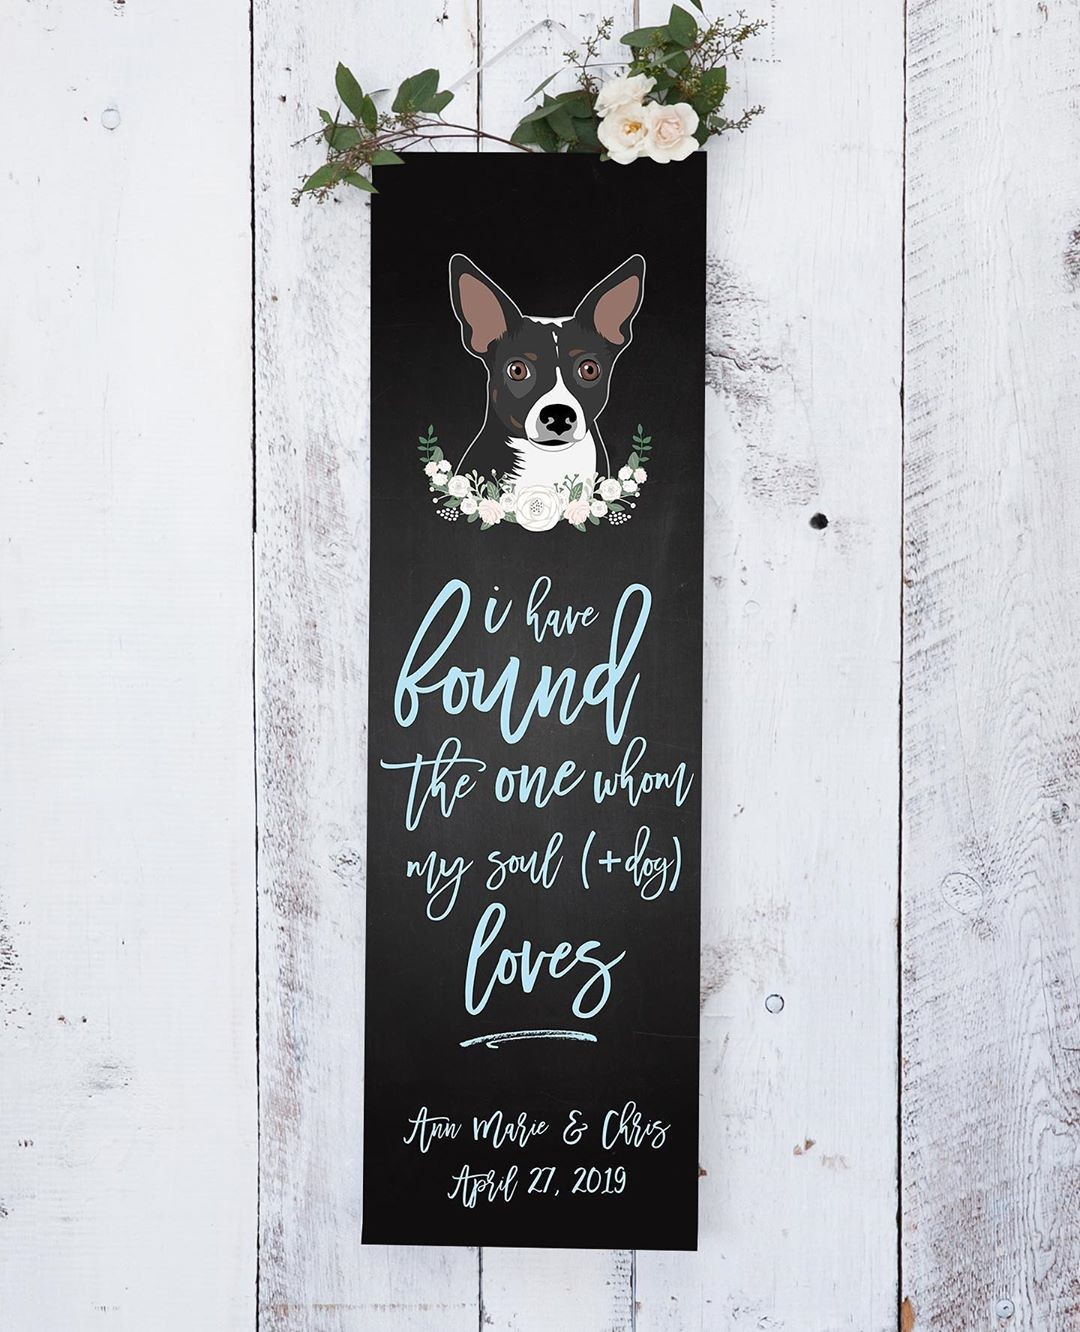 ⁠Have you seen our wedding banners? They're so versatile and fun! ❤️ It can be a great backdrop for your guests to take pictures